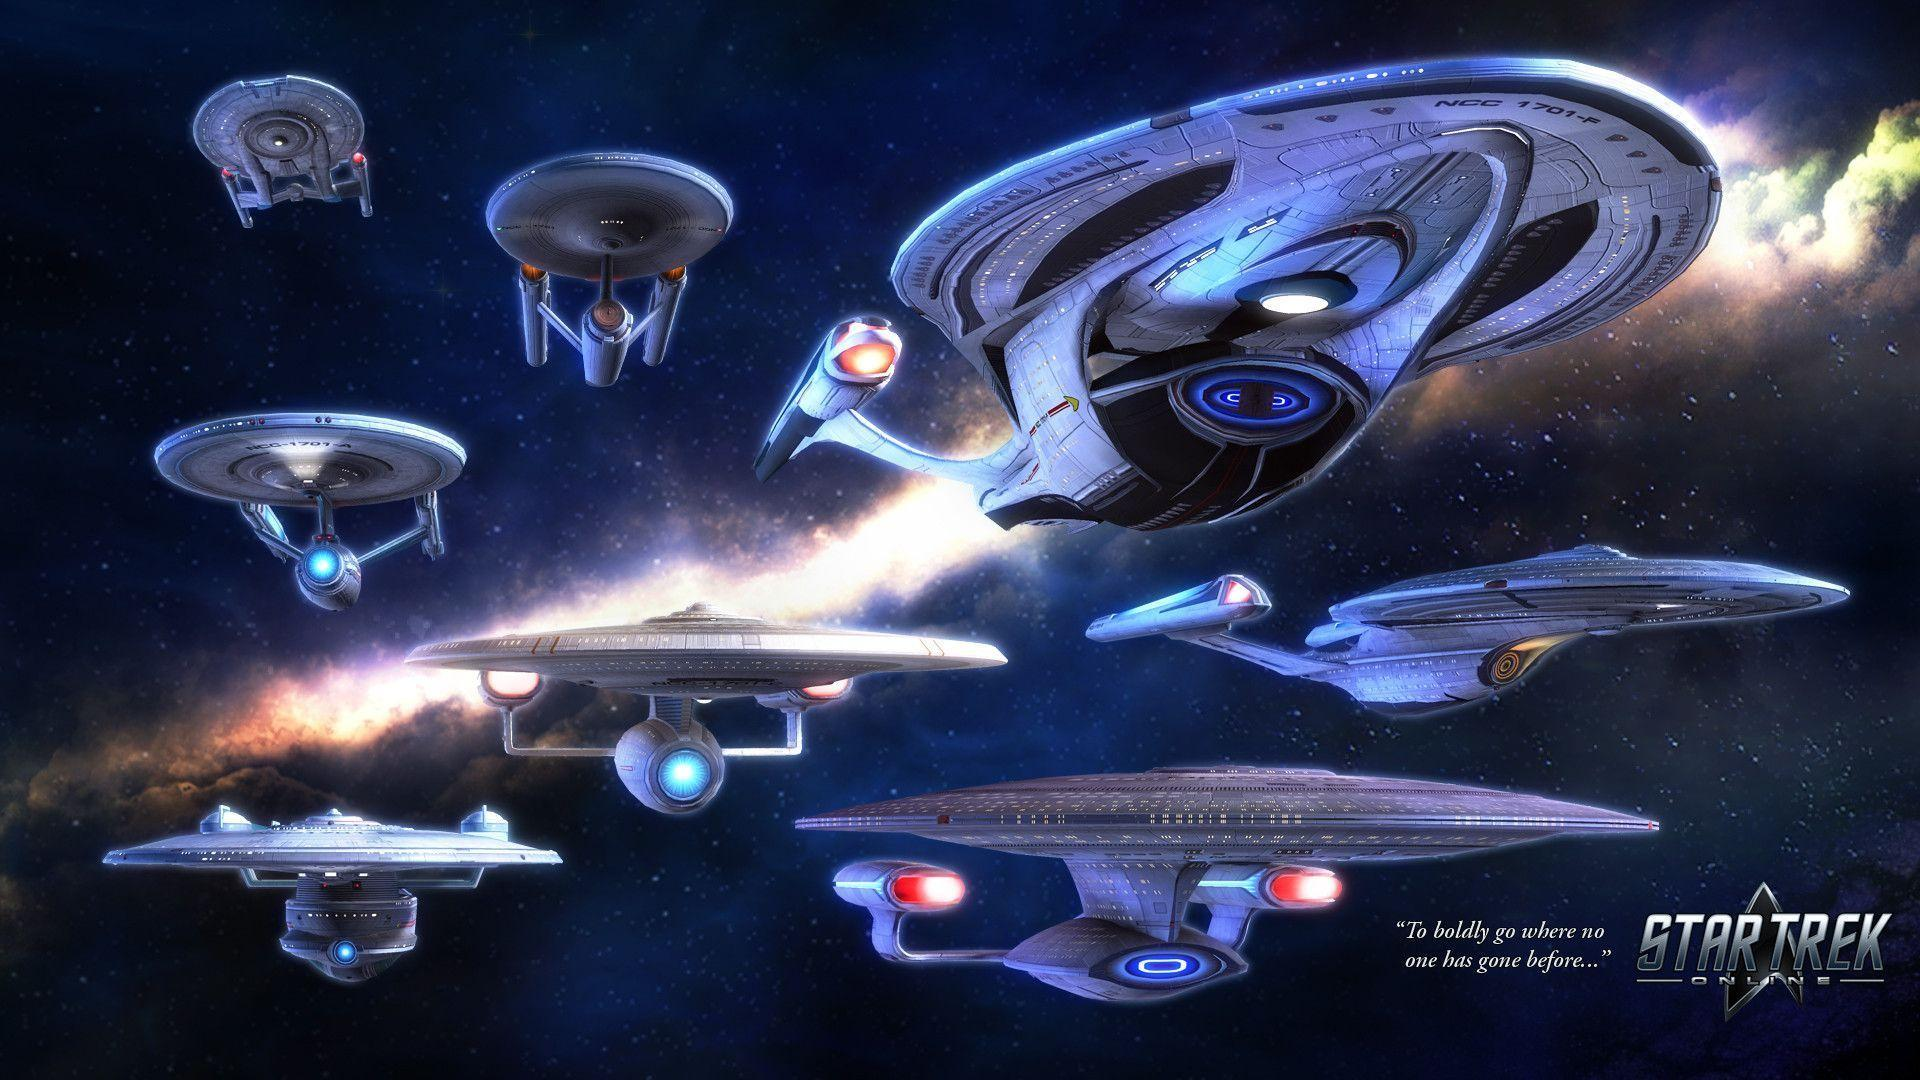 Star Trek Online Wallpapers 1920x1080